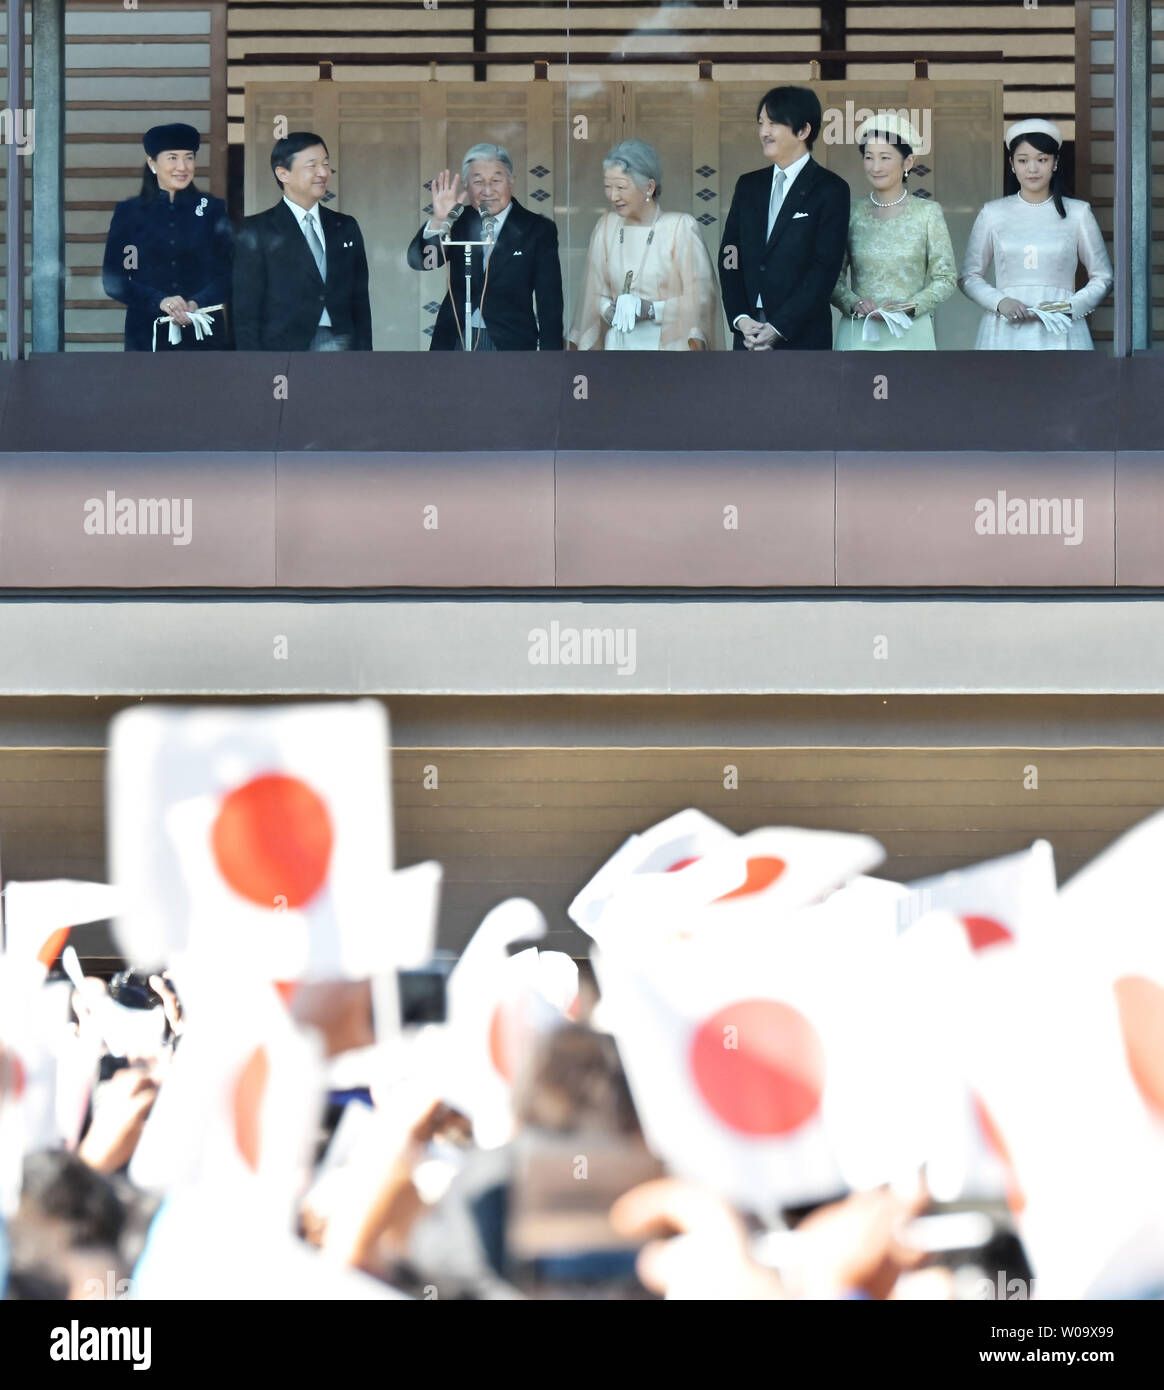 Japan's Emperor Akihito(L3) waves to well-wishers with Empress Michiko(C), Crown Prince Naruhito(L2), Crown Princess Masako(L), Prince Akishino (R3),  Princess Kiko(R2) and Princess Mako(R) during his Majesty's 81st birthday greeting at the East Plaza, Imperial Palace in Tokyo, Japan, on December 23, 2014.     UPI/Keizo Mori - Stock Image